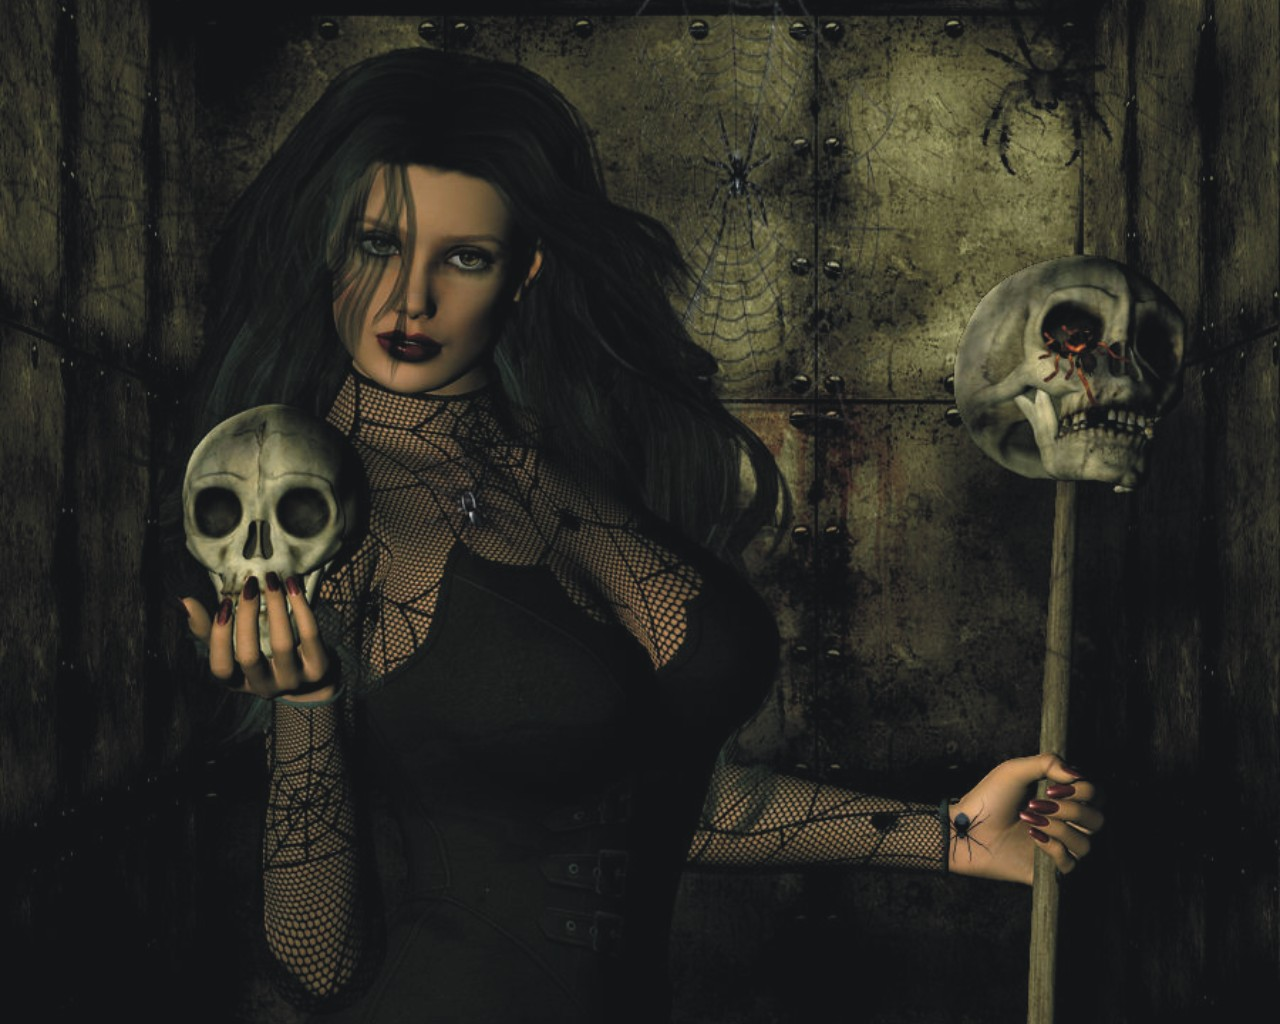 Evil Witch Wallpaper 1280x1024